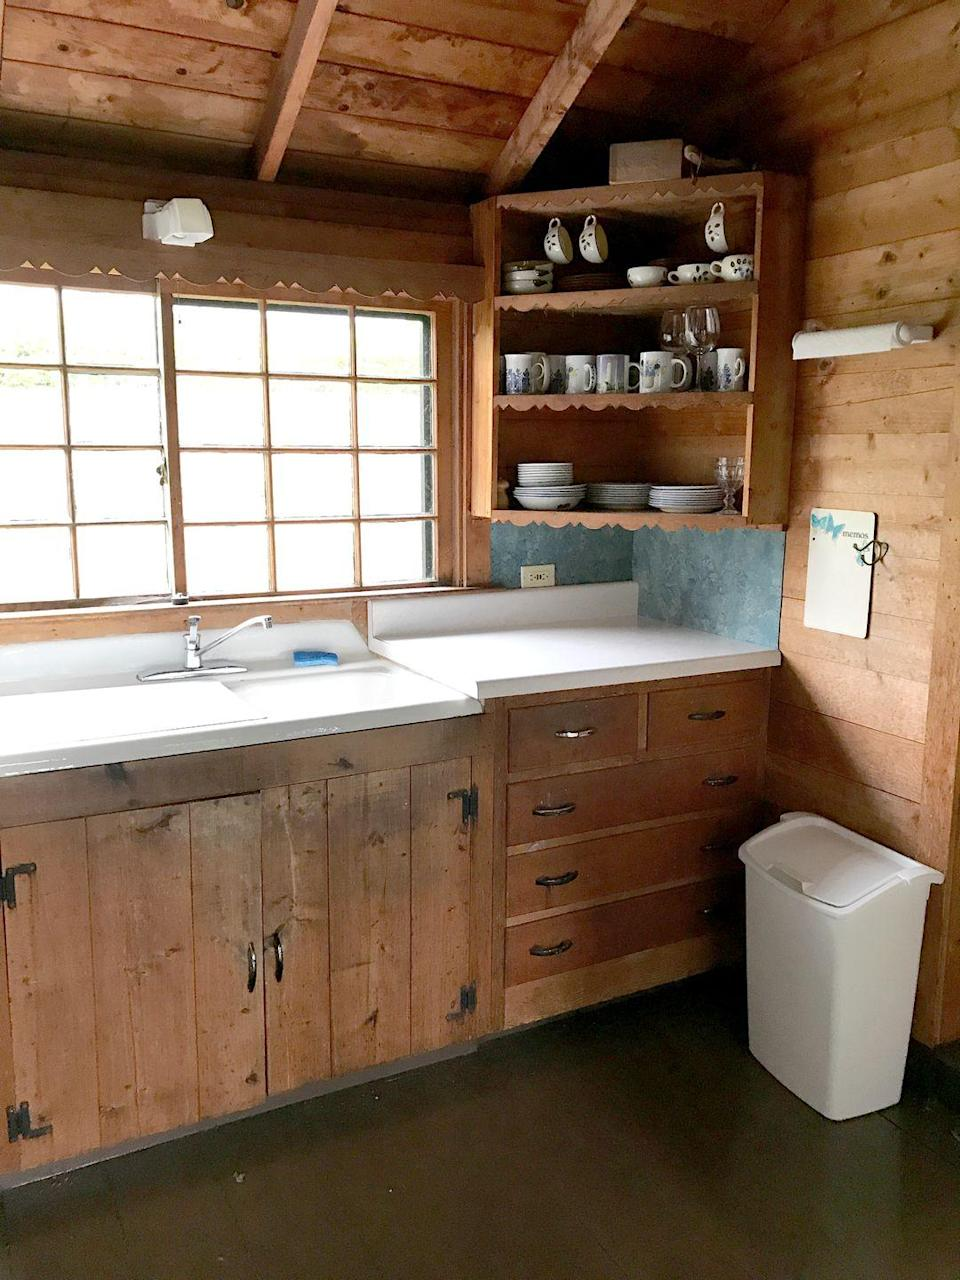 <p>While this kitchen is already pretty clean and tidy, it definitely looks more rustic and out of use. Plus, it could really use a paint job.The best news is that it only takes a few small updates to make a big difference without trampling all over its charming character. </p>